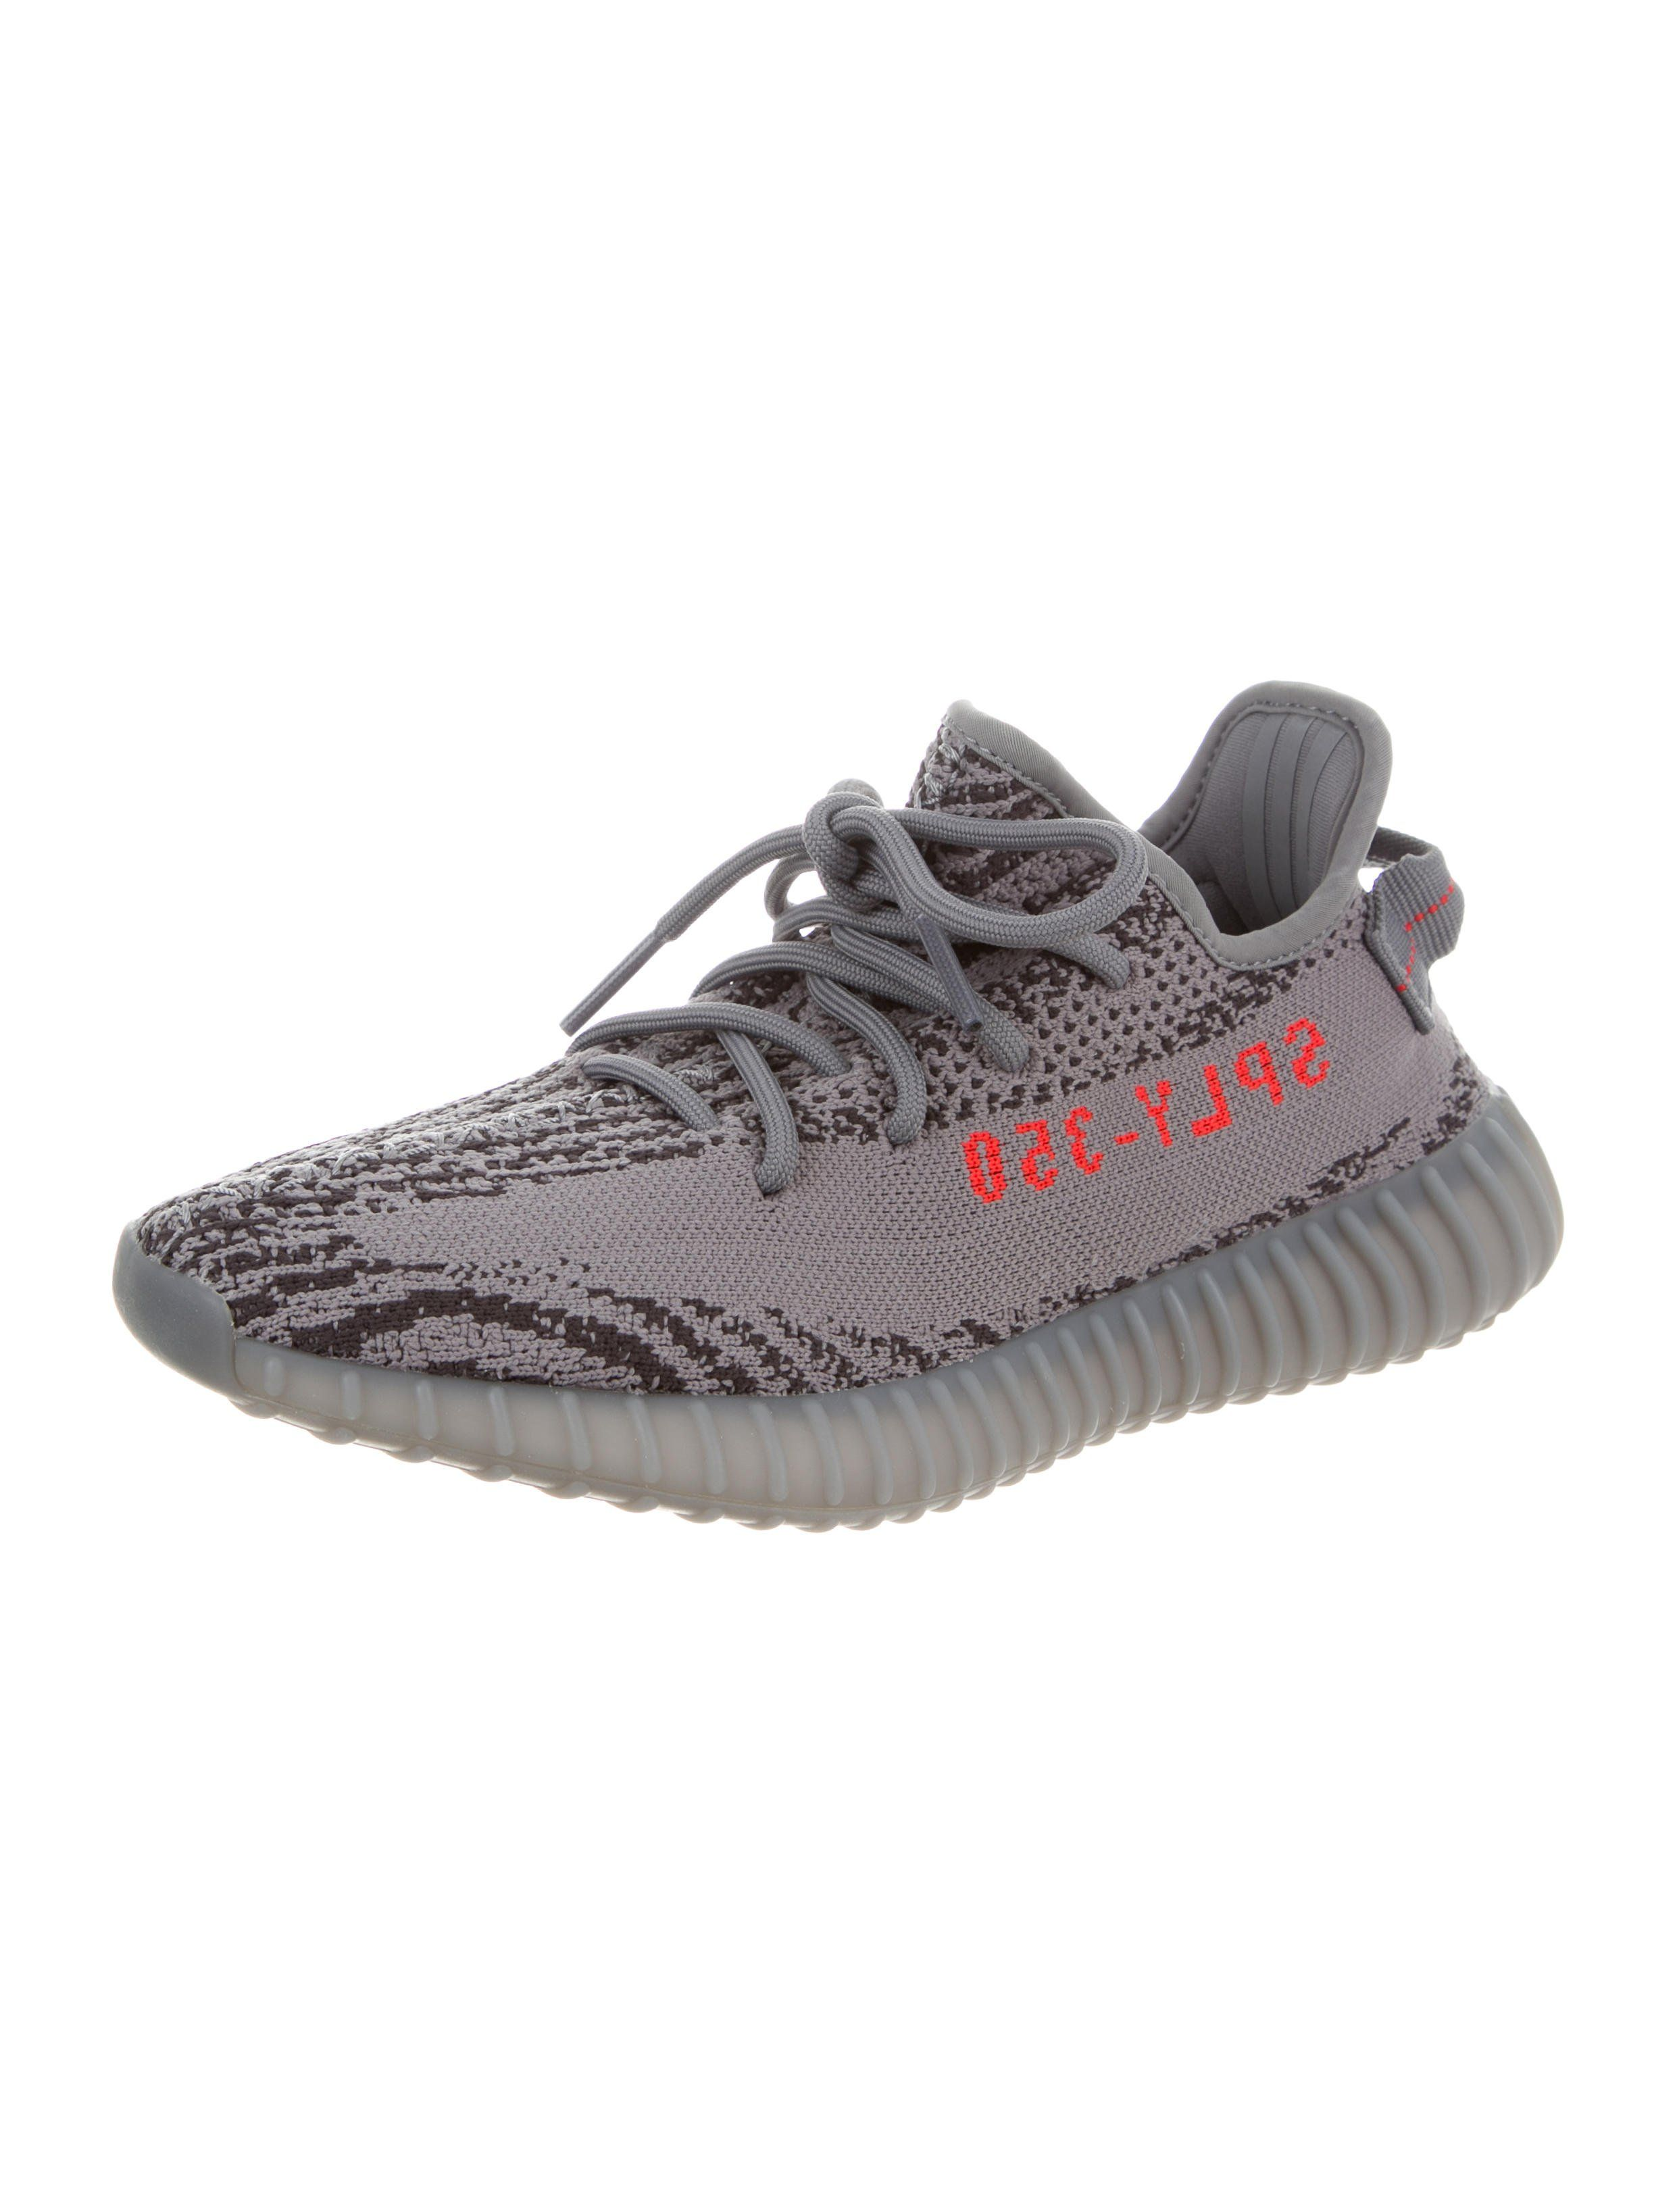 38c62b95a From the Fall 2017 Release. Men s Beluga 2.0 Primeknit Yeezy for Adidas 350  V2 Boost